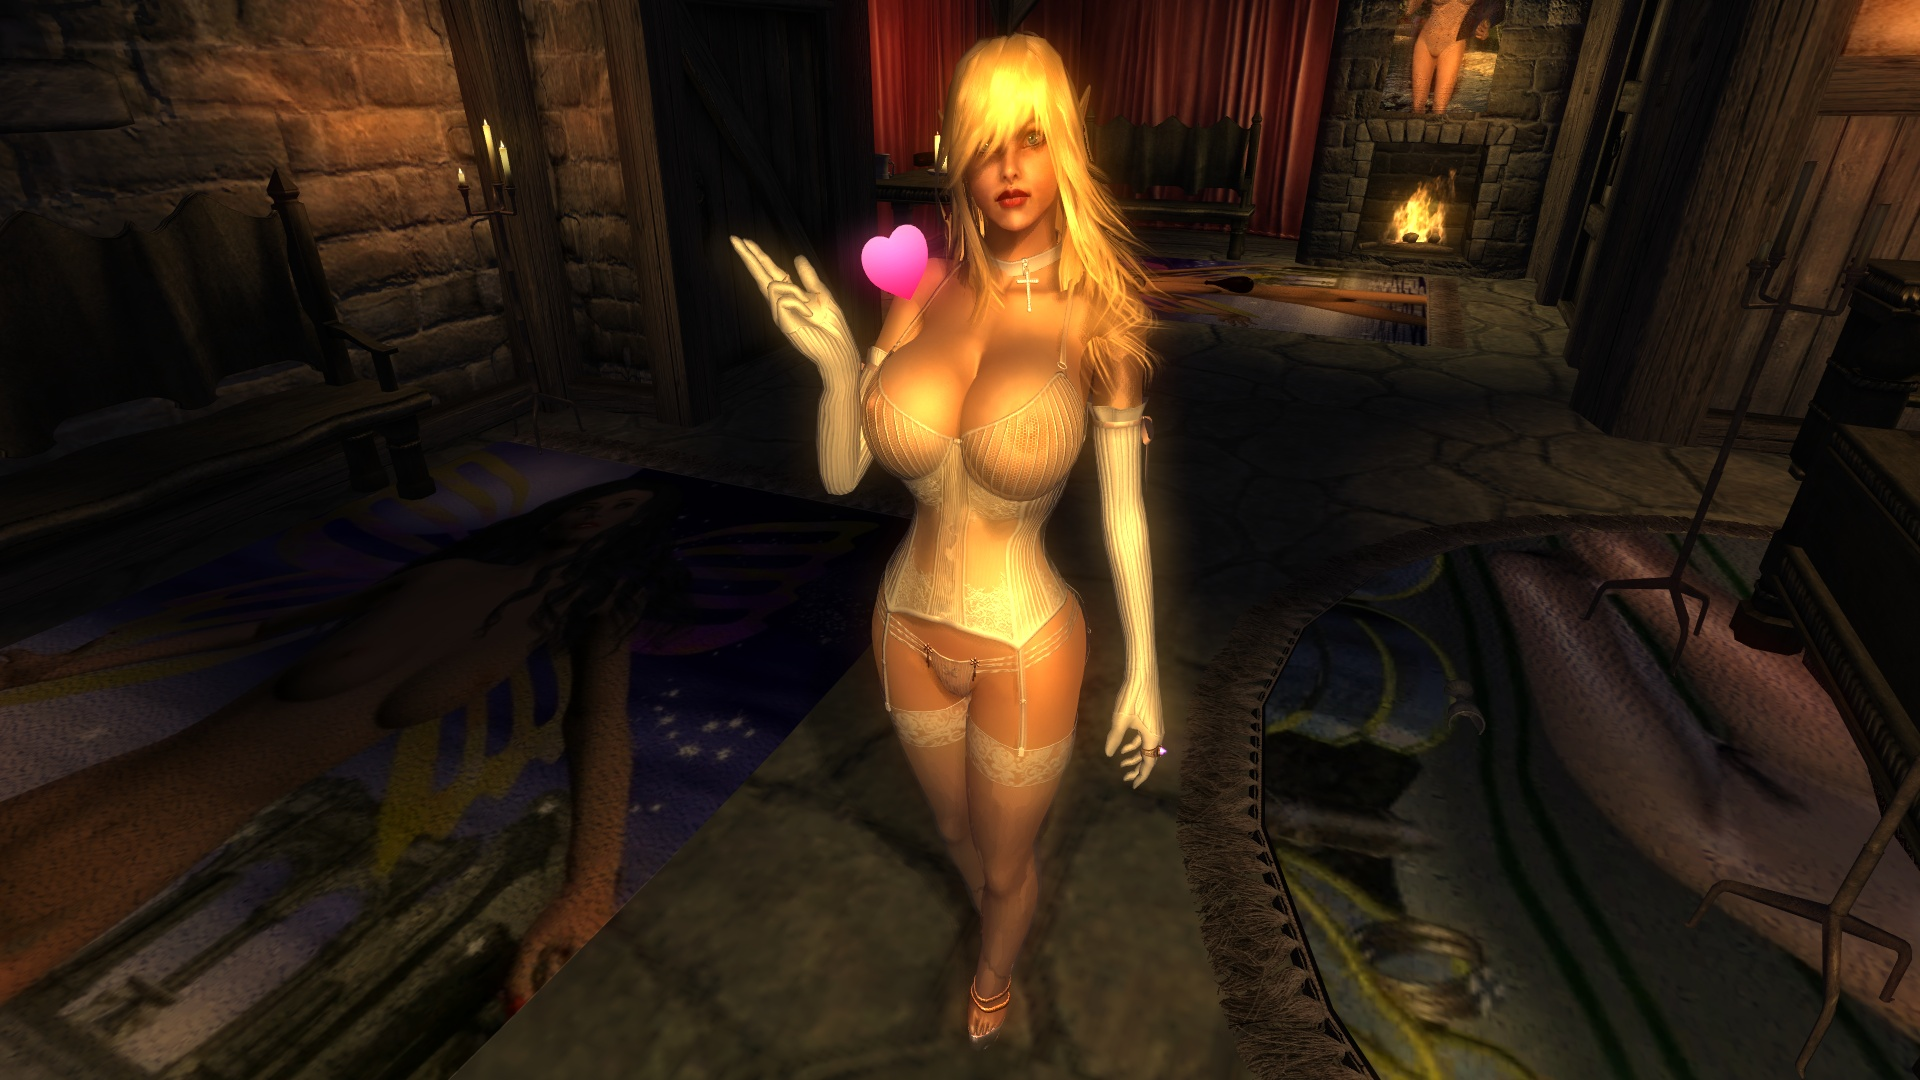 The elder scrolls iv nude nackt video